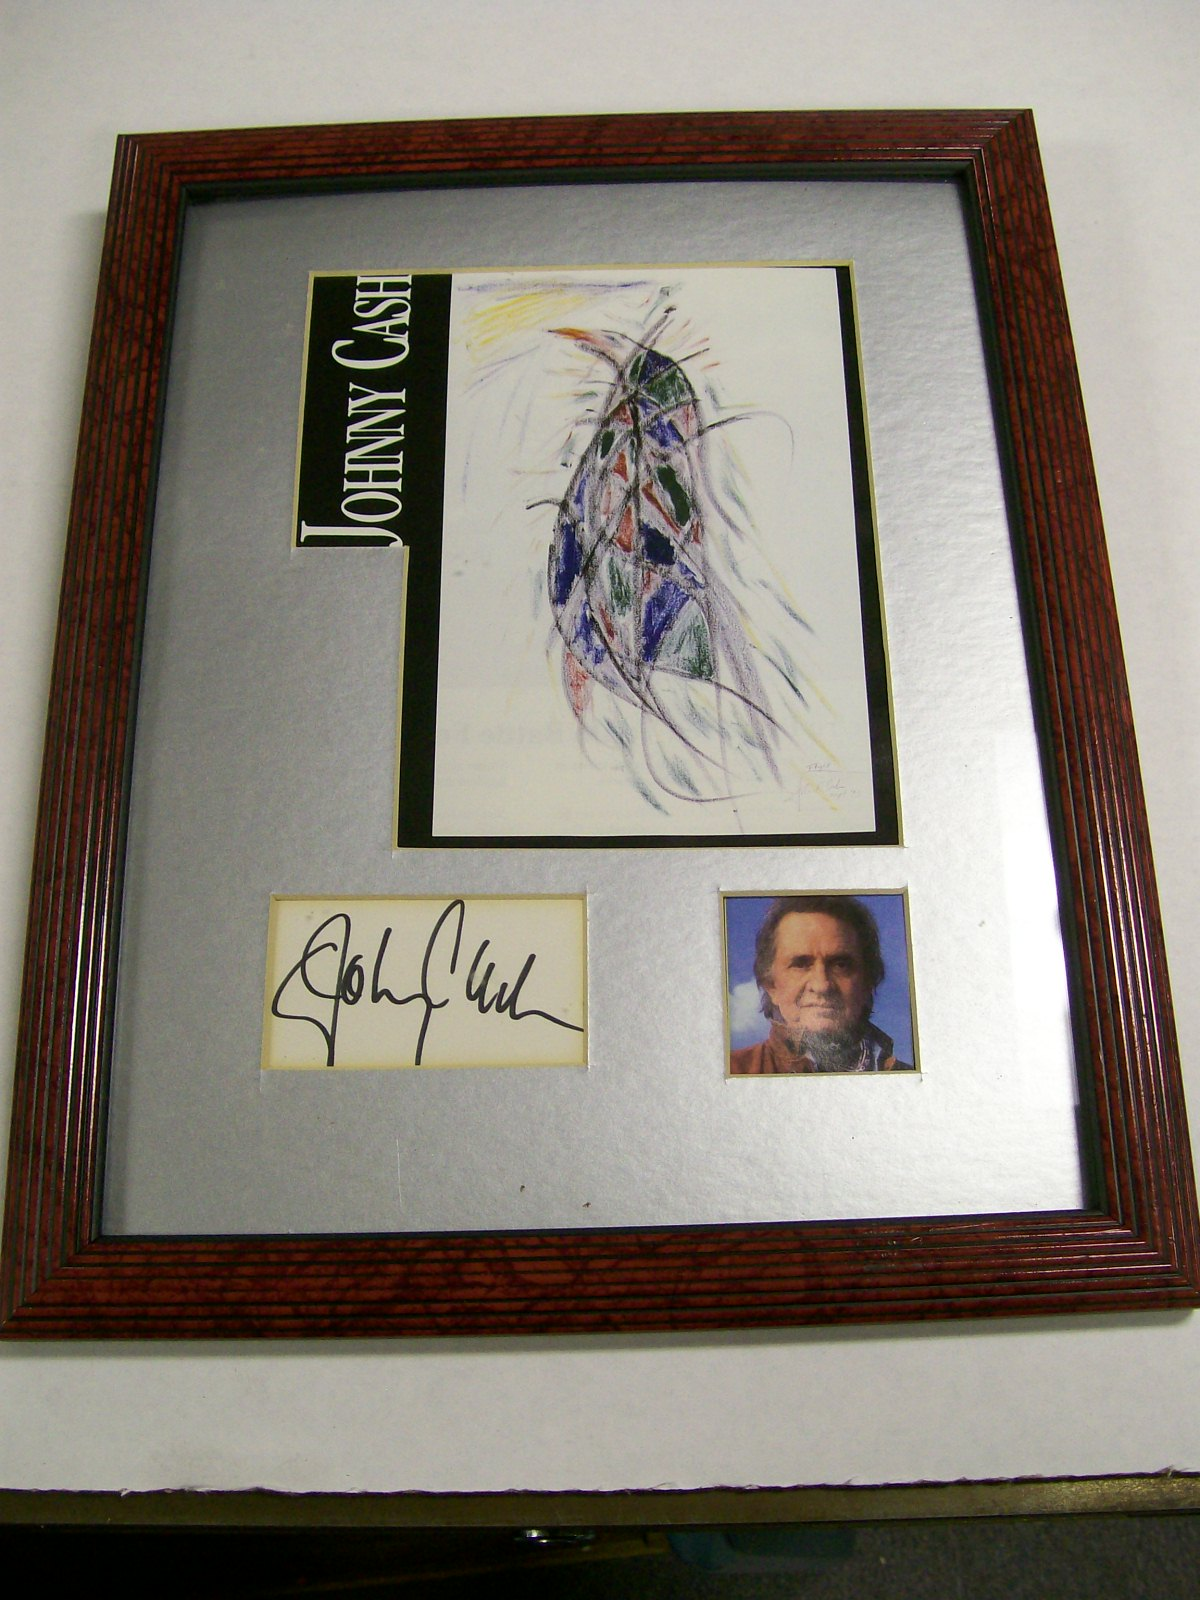 Johnny Cash Autographed Framed Photo of his Painting/Rare